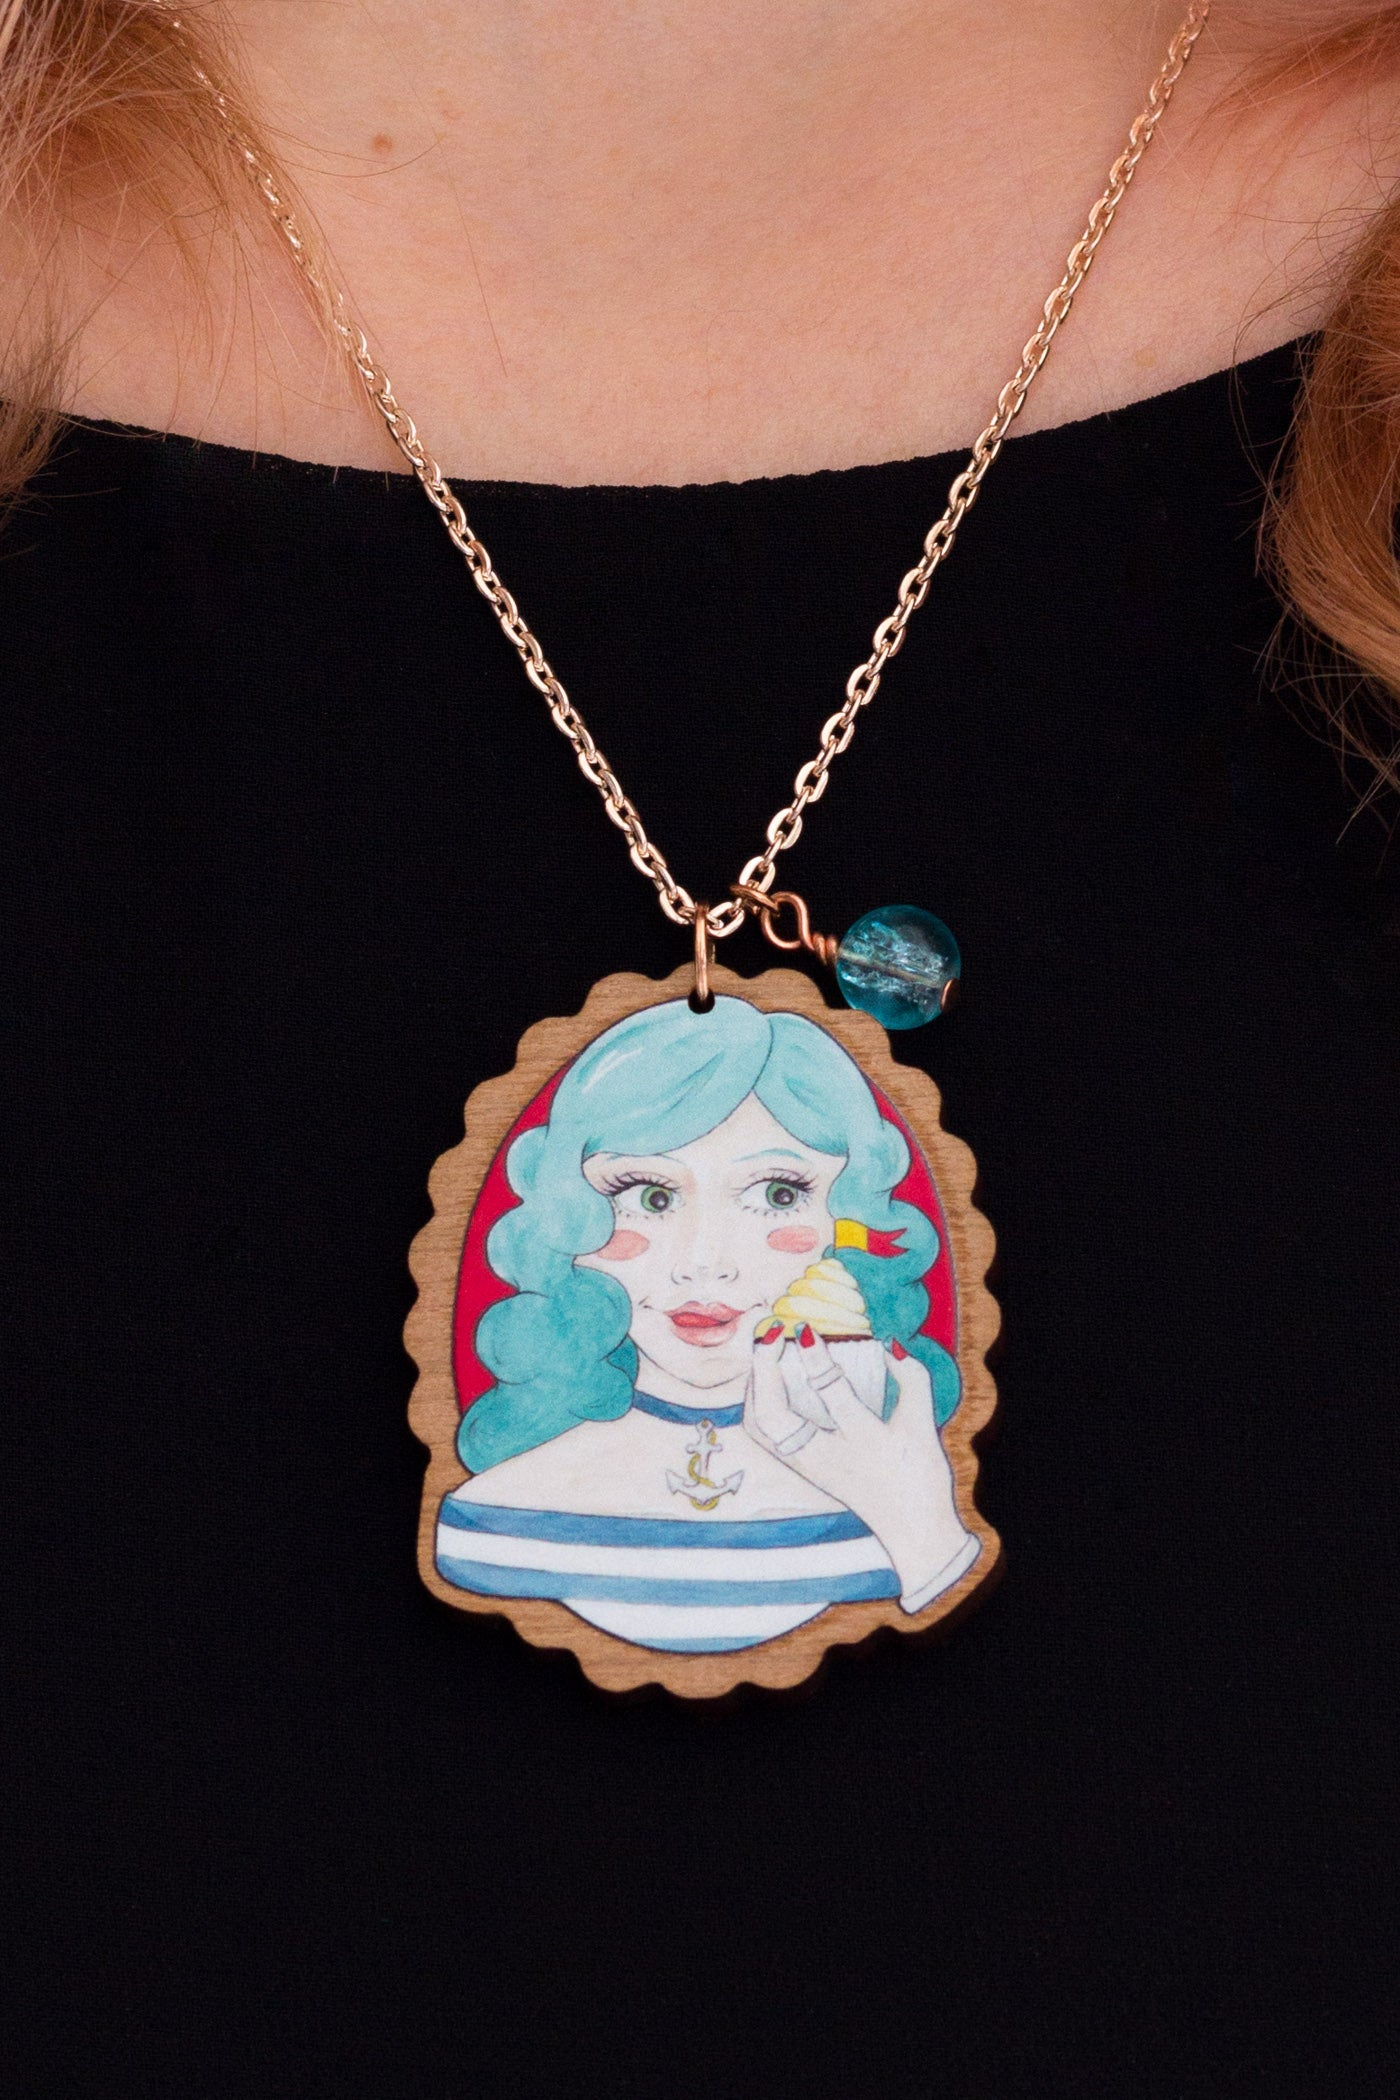 Blue-Haired Nautical Meredith with a Cupcake Rose Gold & Wood Pendant Necklace - A Rose Cast